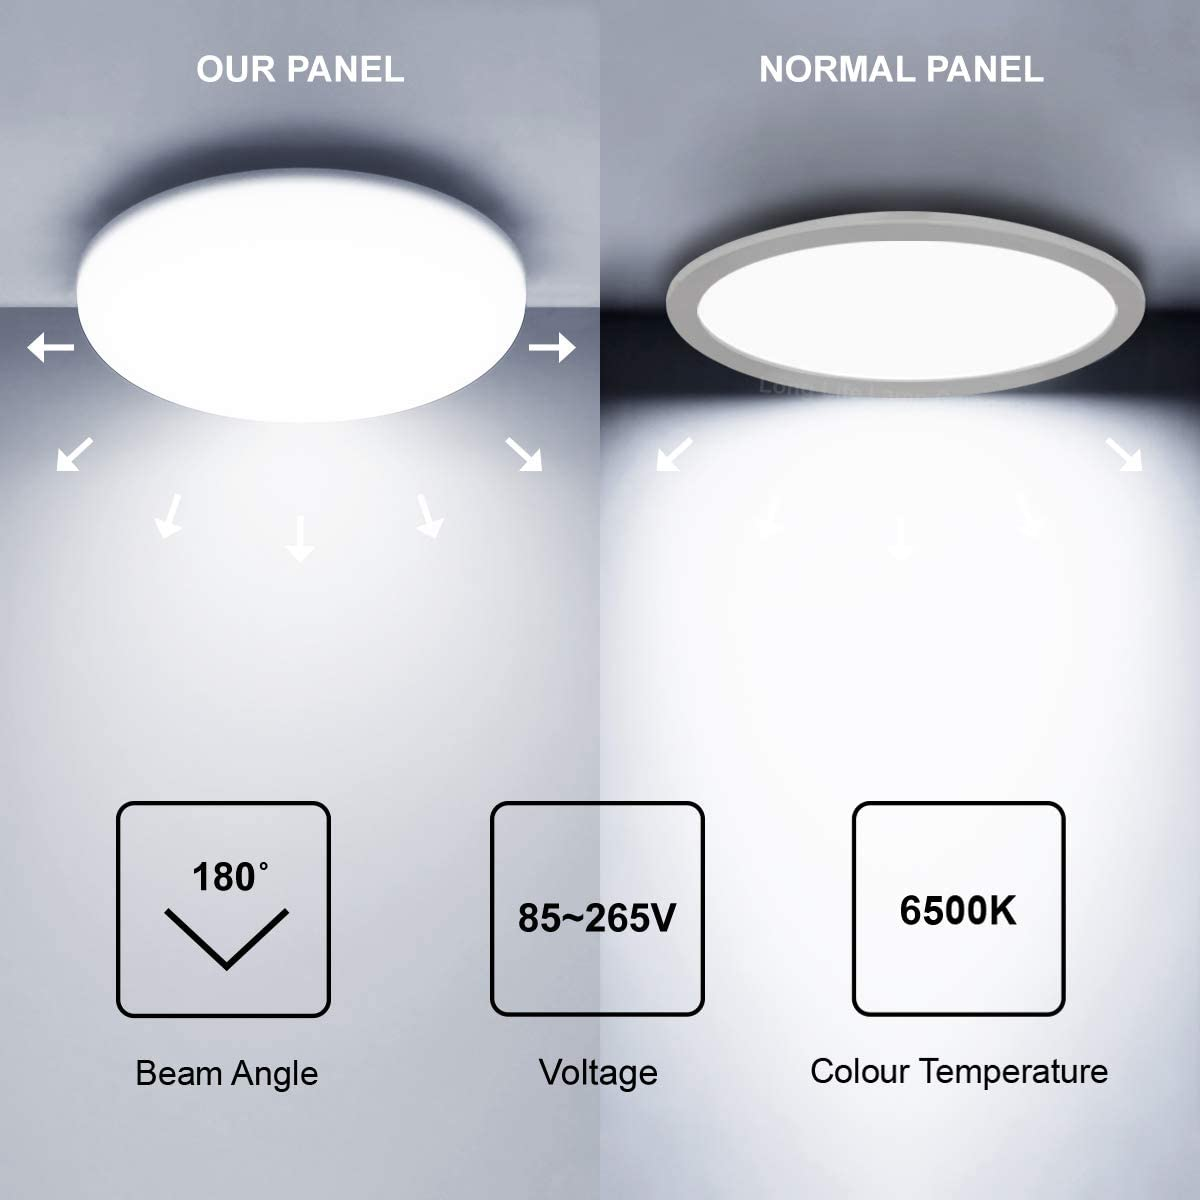 frameless vs old led panel